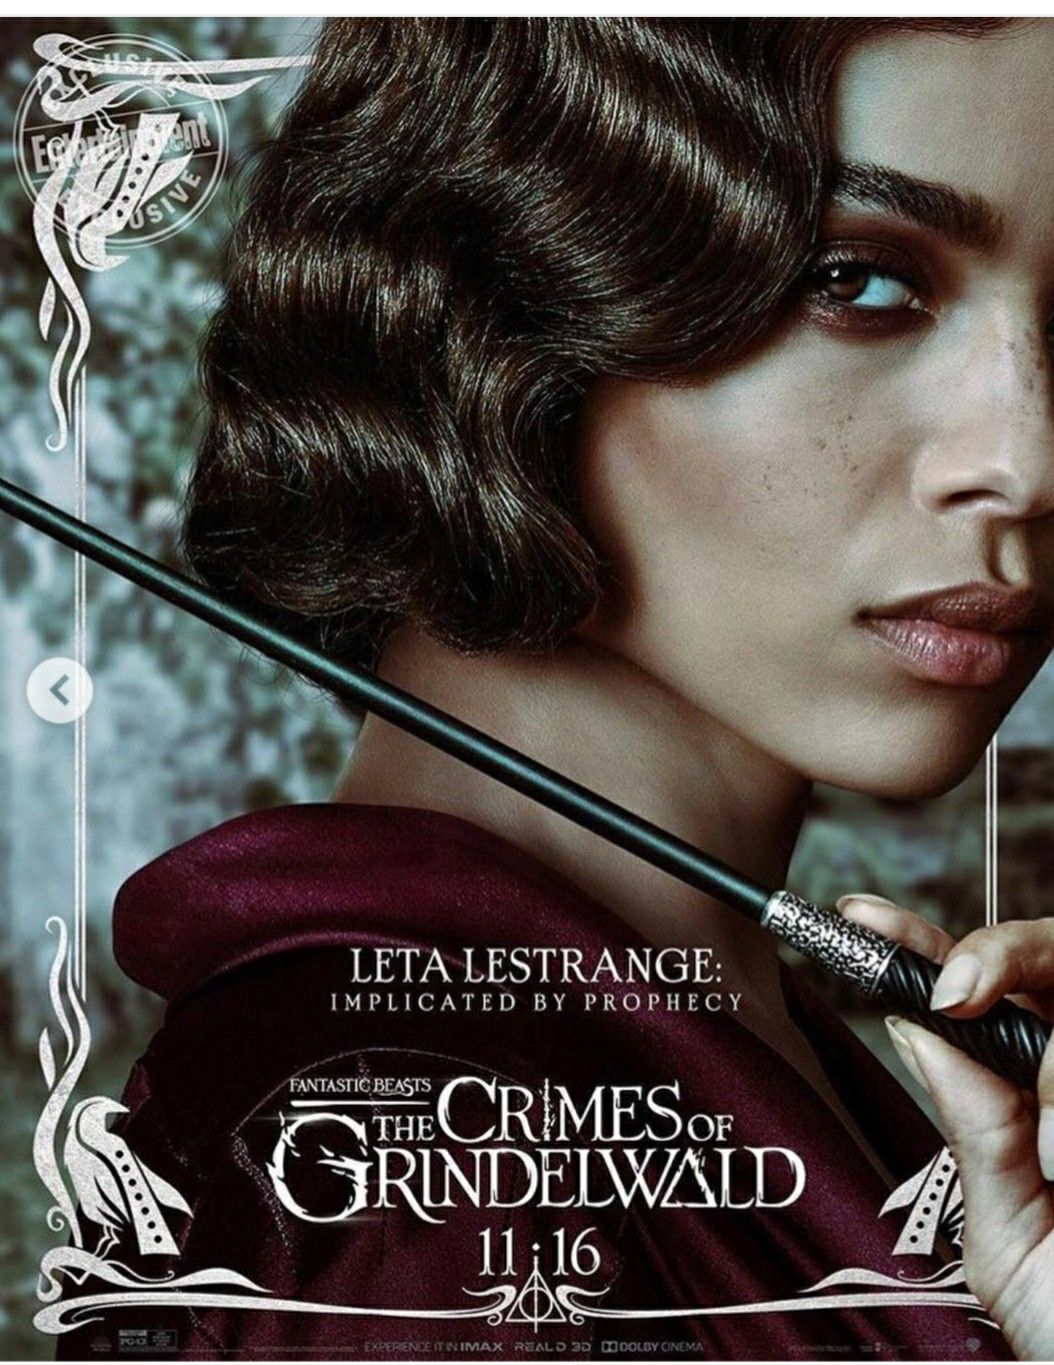 Pin By Chris Wiedorn On Fantastic Beasts Fantastic Beasts